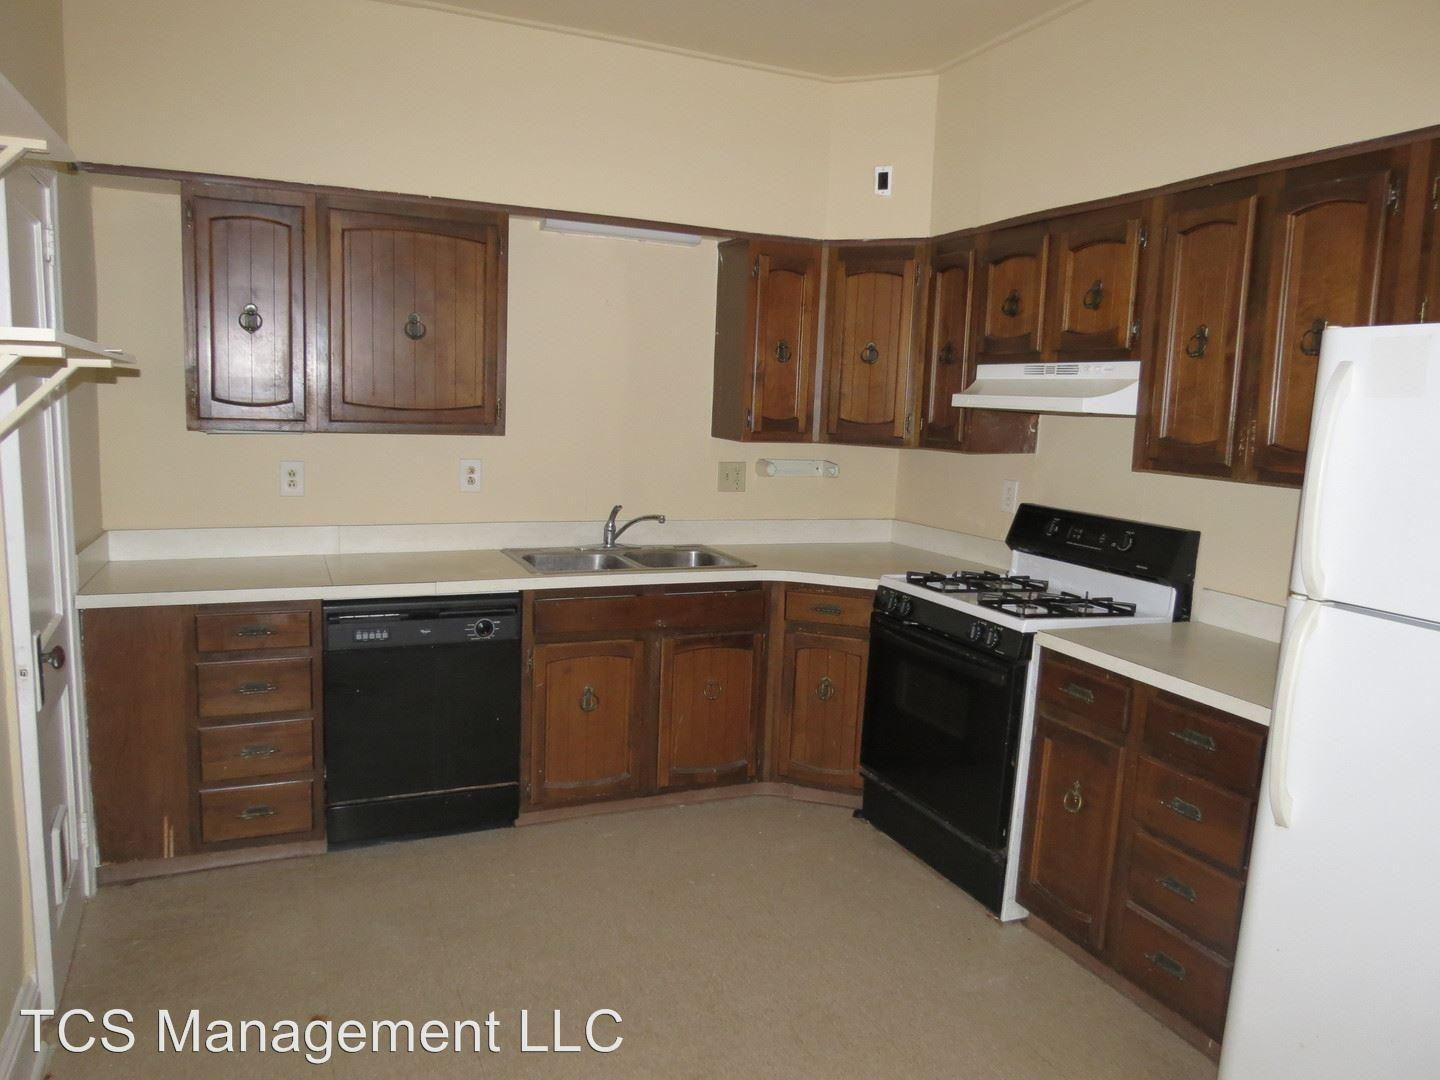 3590 Indian Queen Lane - Unit 1 photo #1